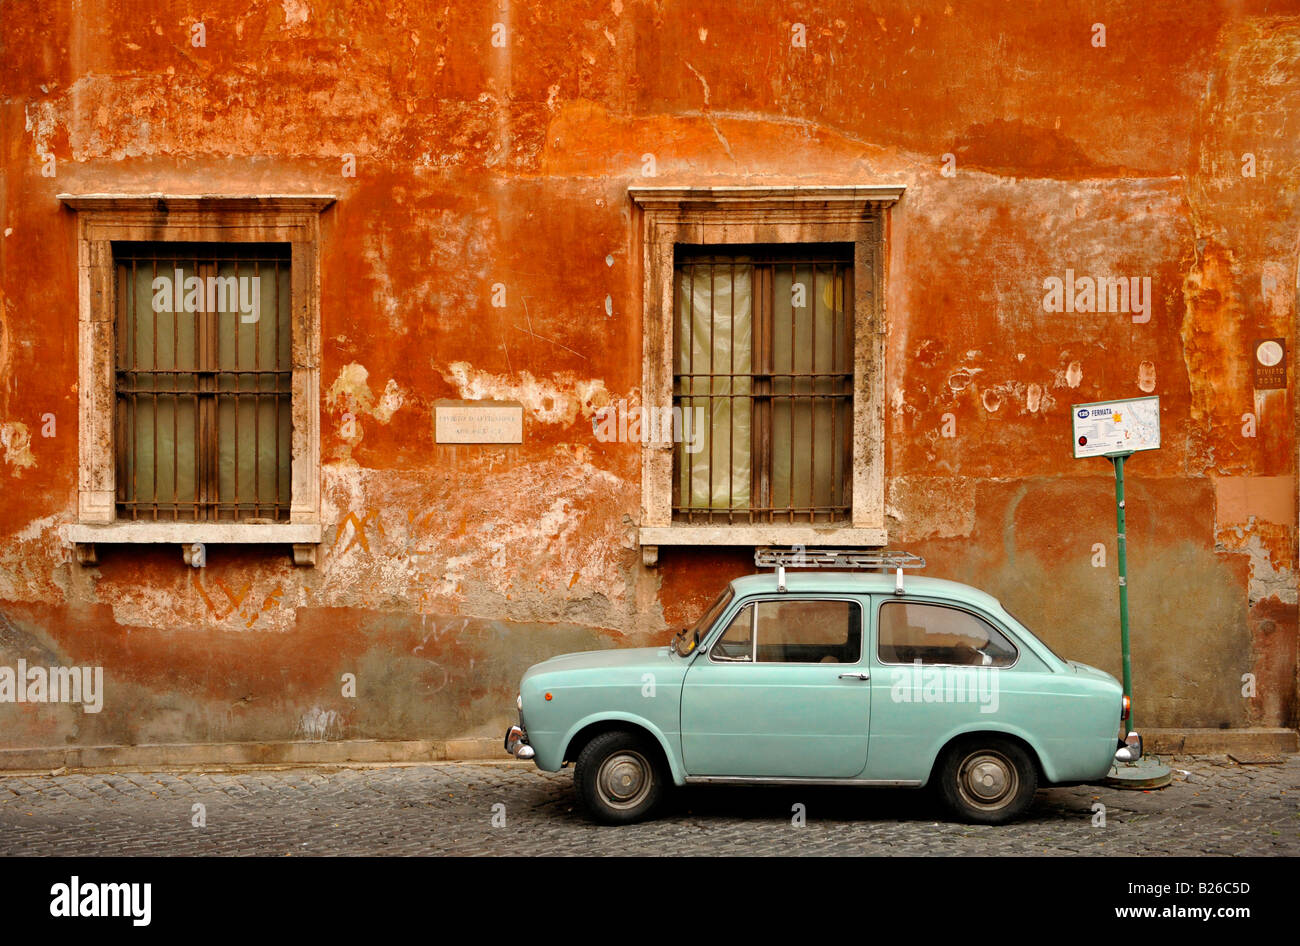 Wall of house with a Fiat 850 in front, Trastevere, Rome, Italy Stock Photo